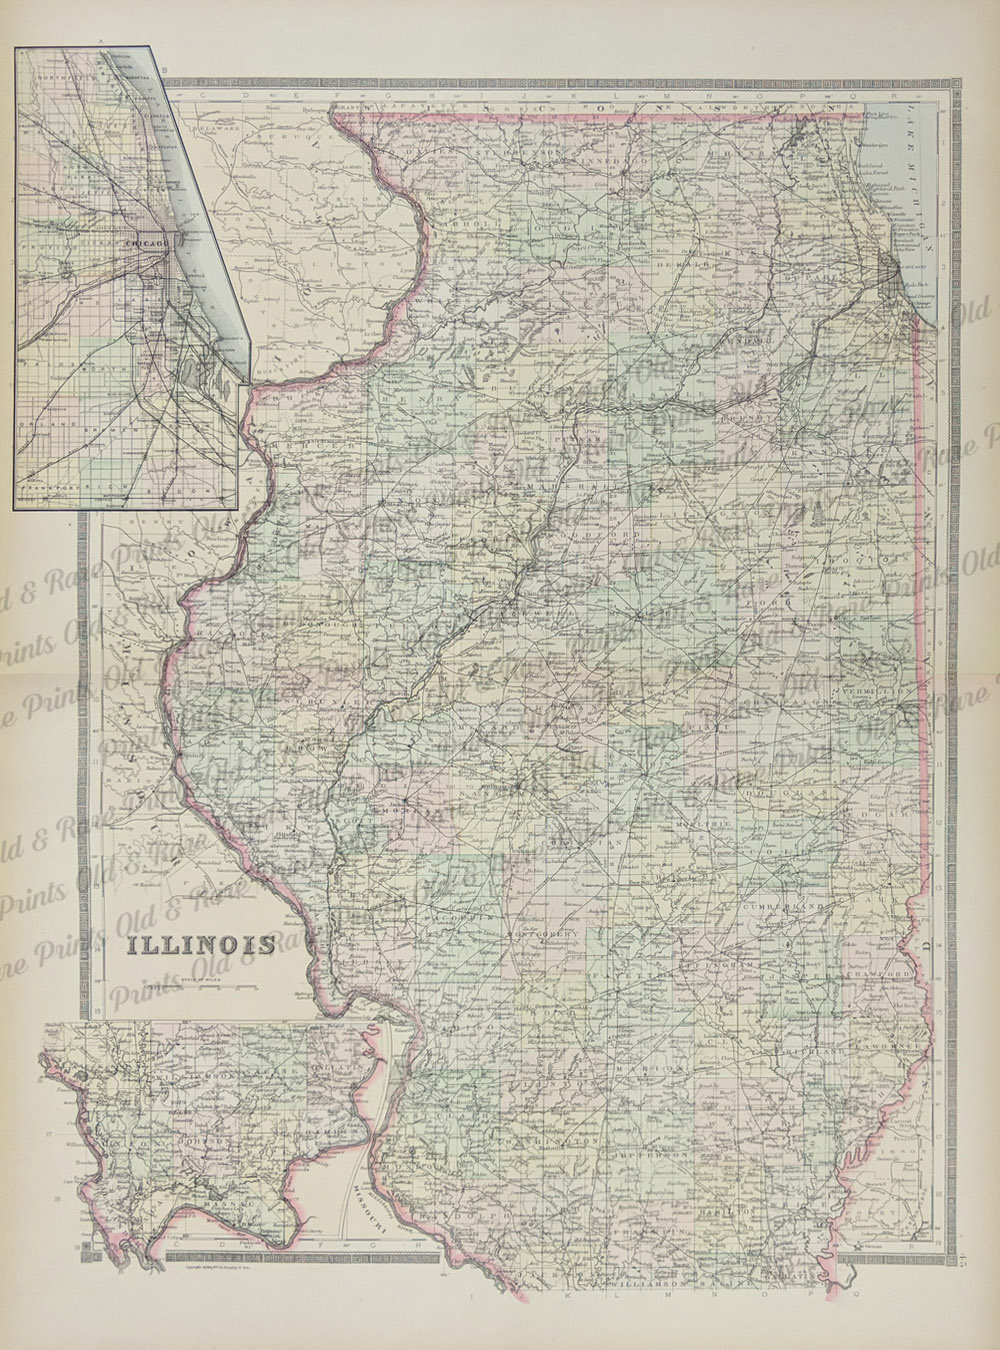 Prints old rare illinois antique maps prints 1886 bradleys atlas of the worlds hand colored map of illinois with inset of downtown chicago 26 x 19 in gumiabroncs Image collections